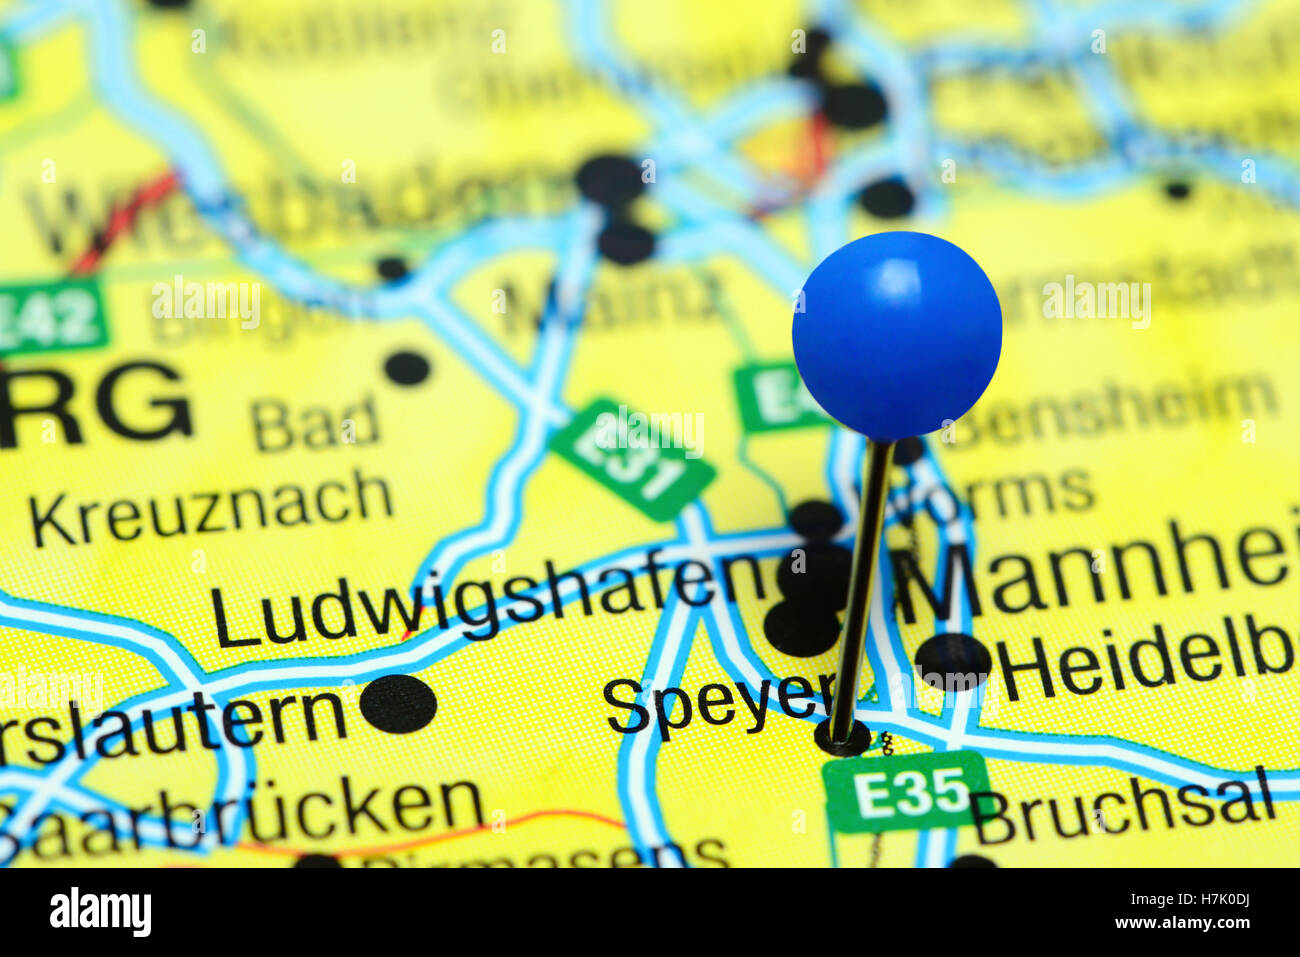 Speyer Pinned On A Map Of Germany Stock Photo 125192638 Alamy